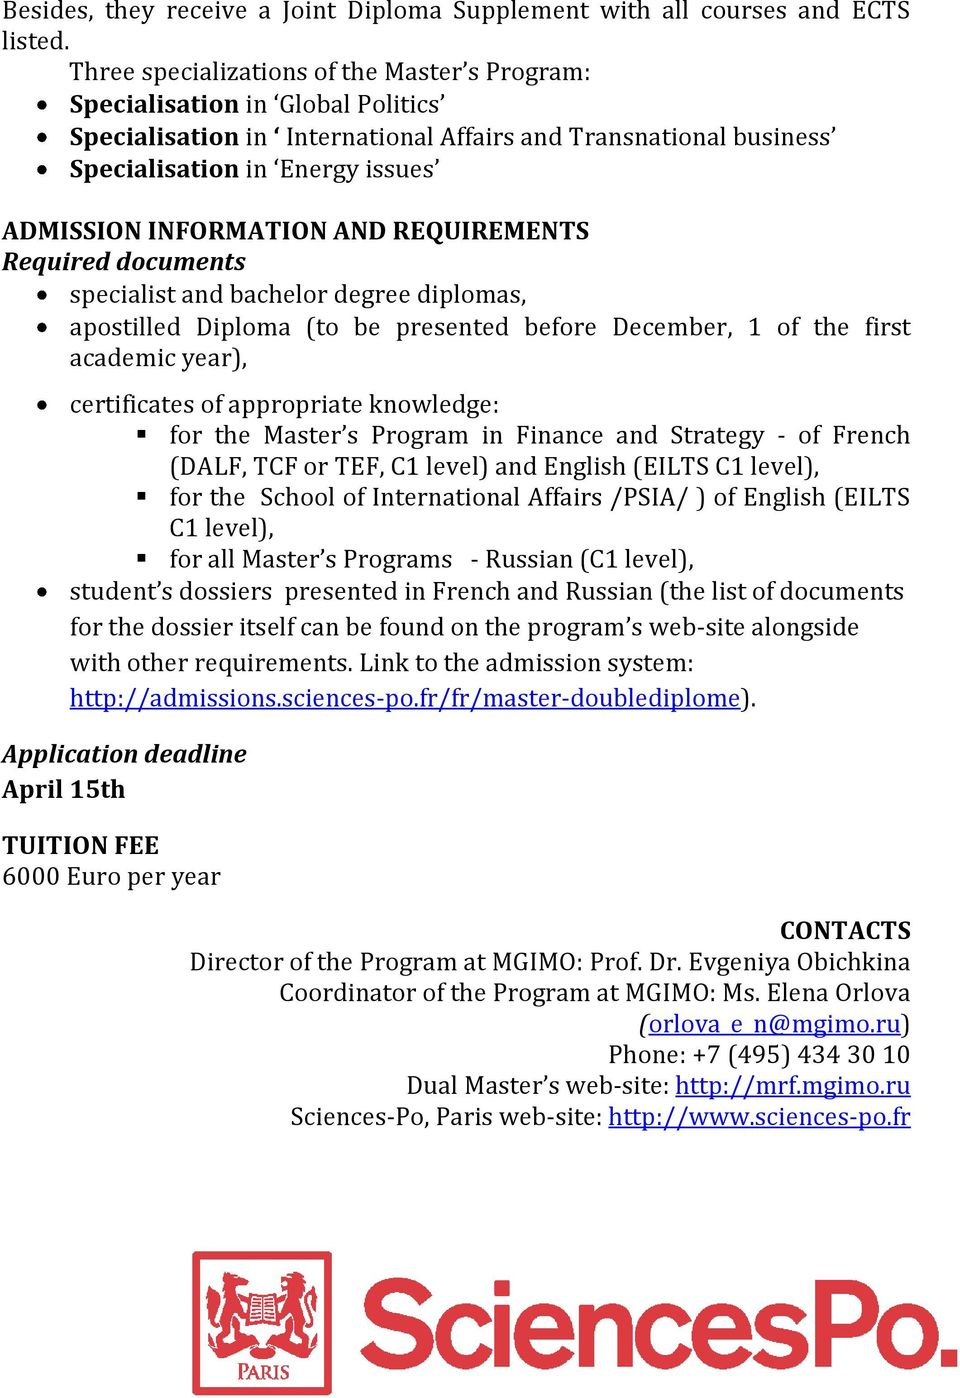 INFORMATION AND REQUIREMENTS Required documents specialist and bachelor degree diplomas, apostilled Diploma (to be presented before December, 1 of the first academic year), certificates of